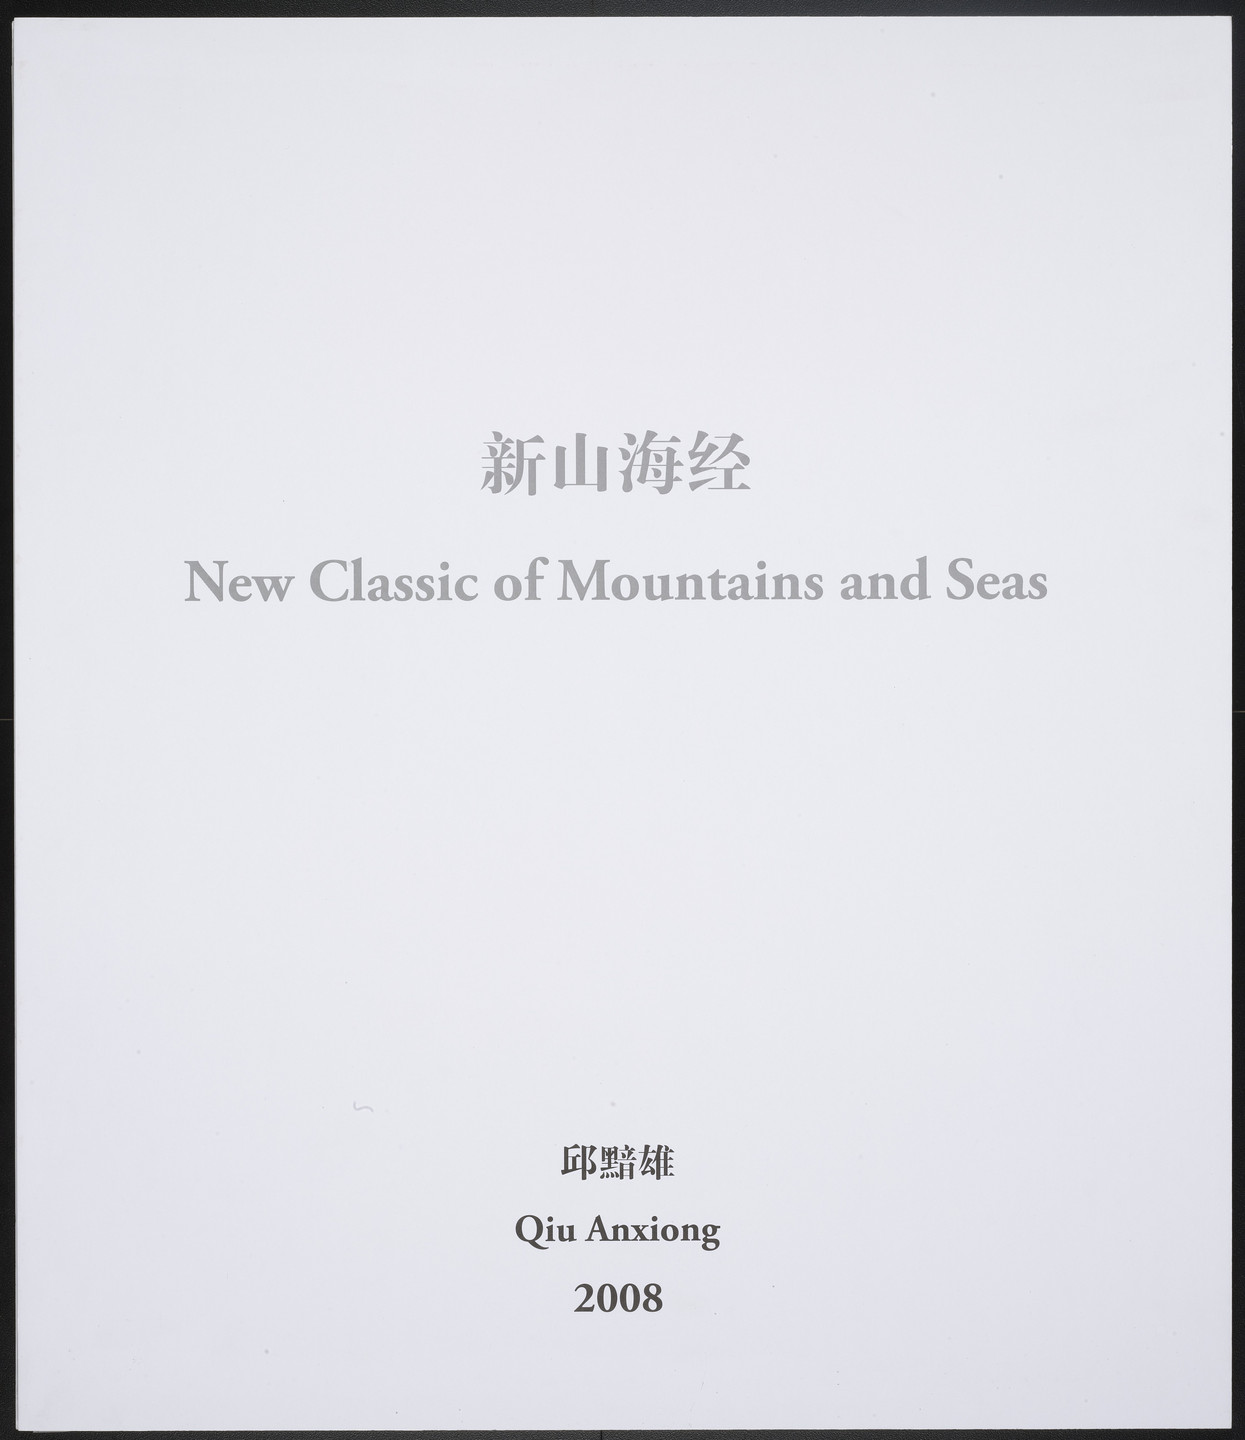 Qiu Anxiong. New Classic of Mountains and Seas. 2008